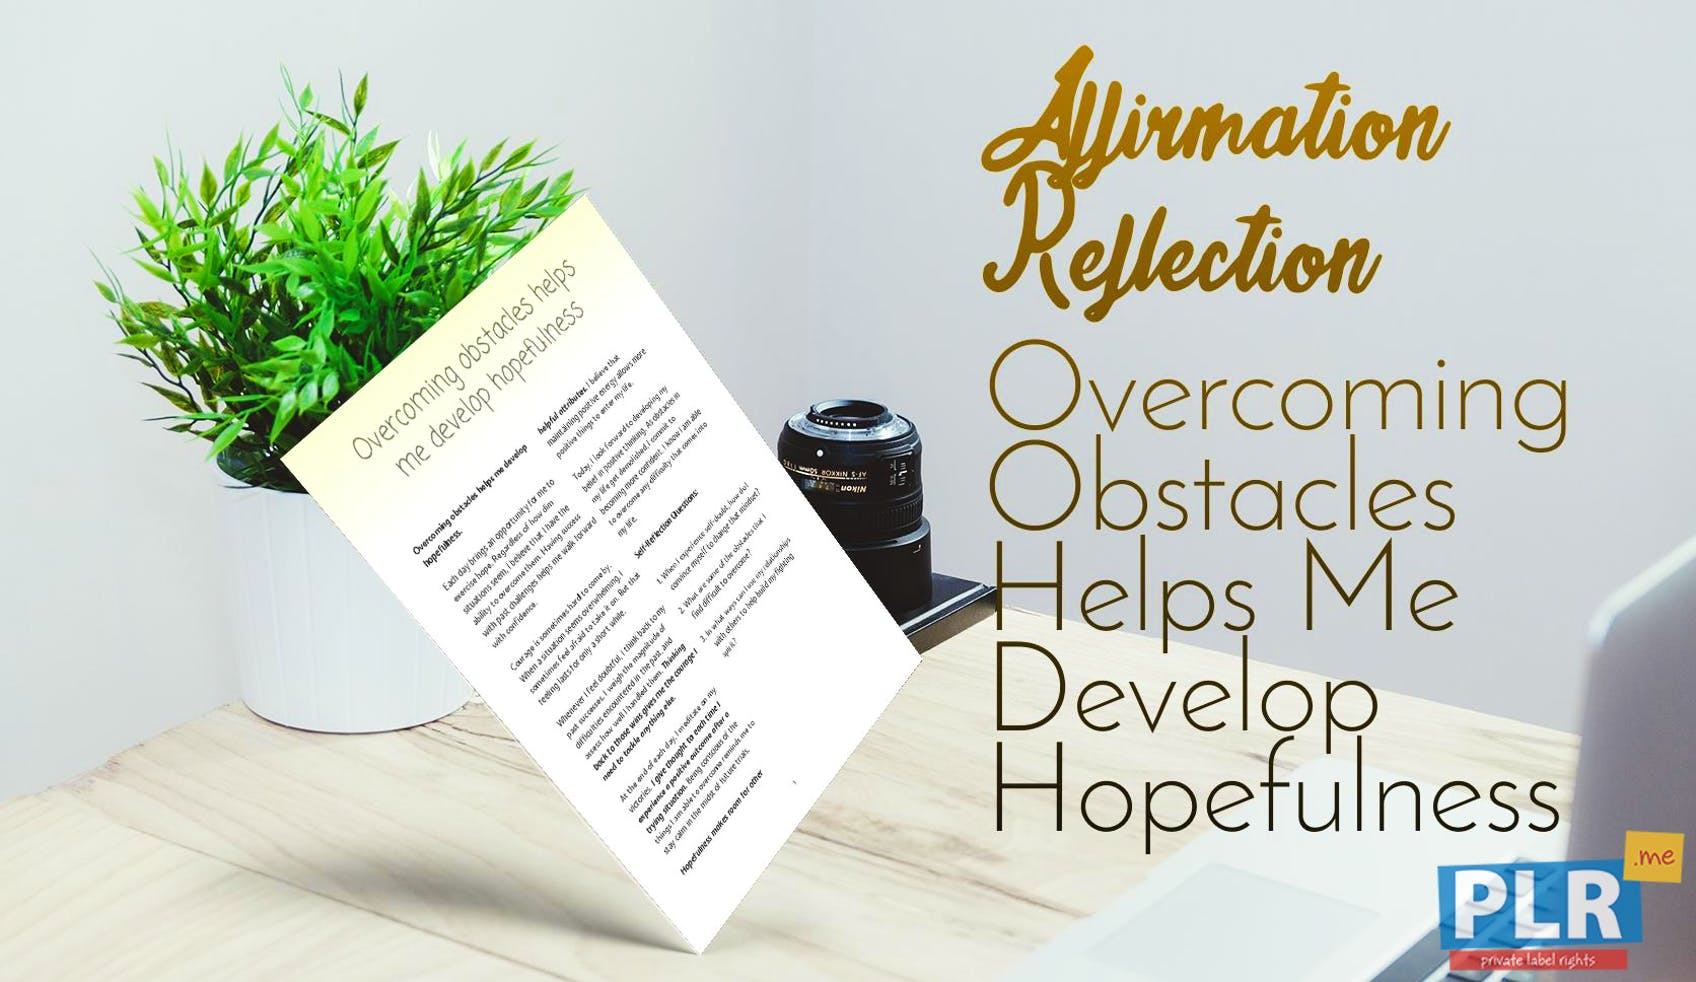 Overcoming Obstacles Helps Me Develop Hopefulness